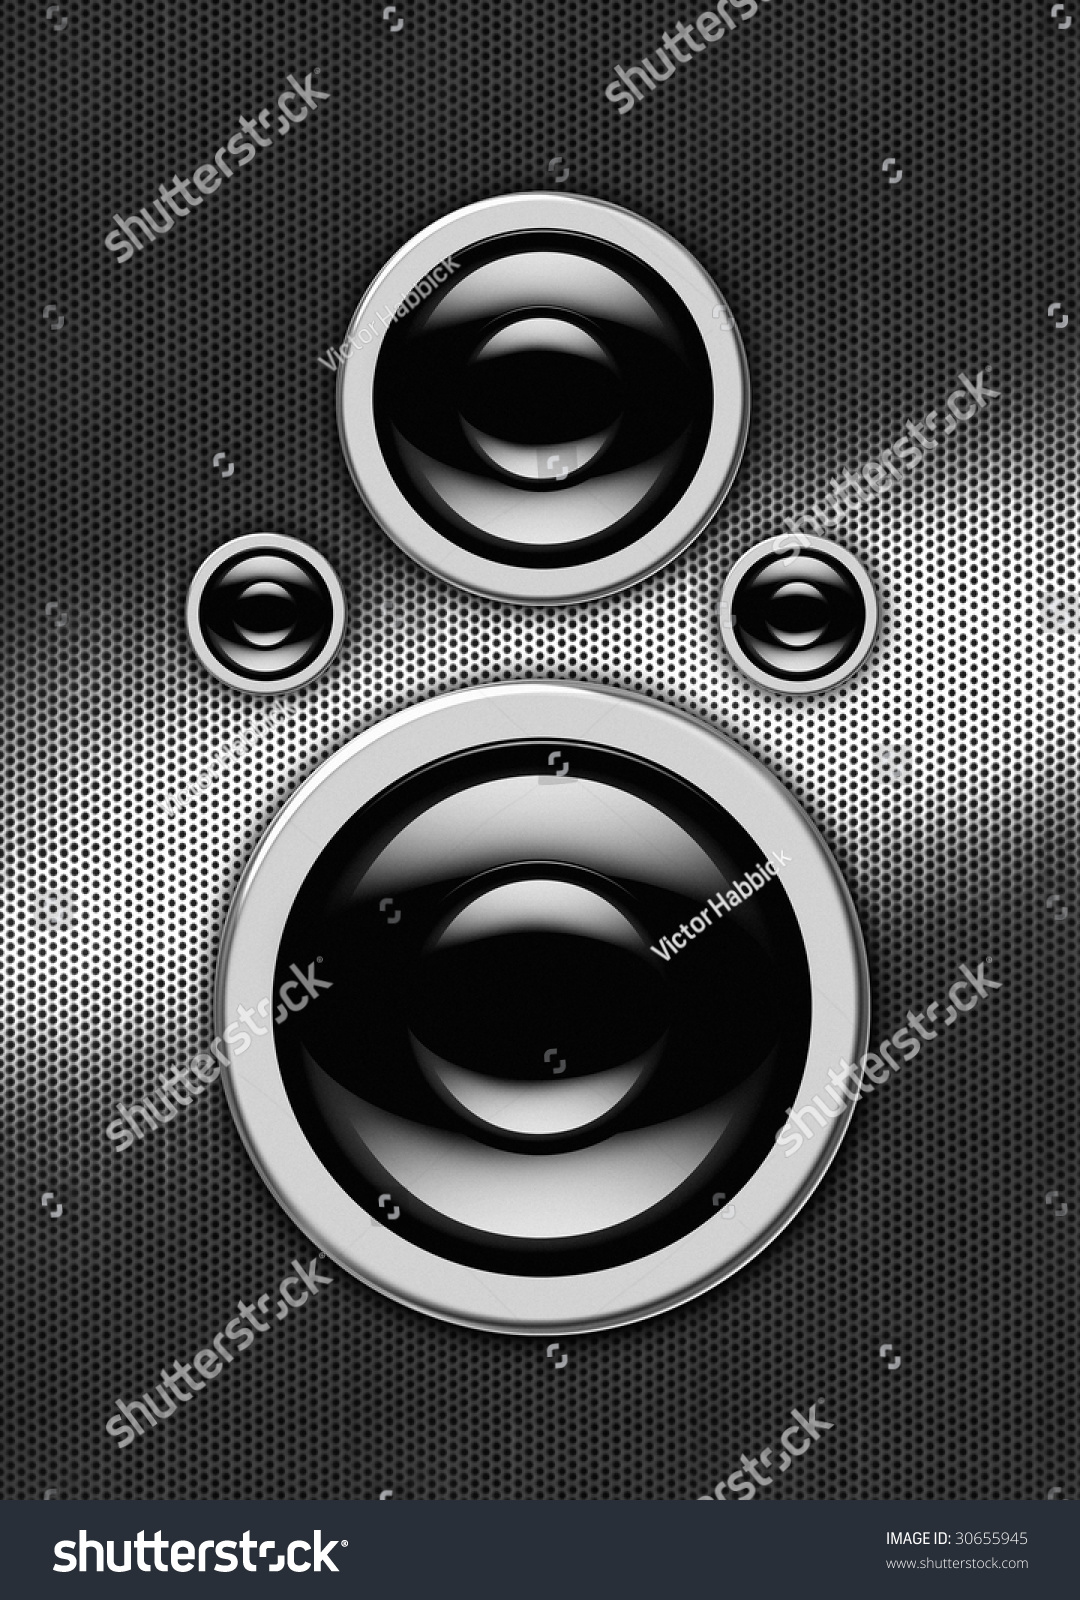 the front of a hi tech audio speaker stock photo 30655945 shutterstock. Black Bedroom Furniture Sets. Home Design Ideas